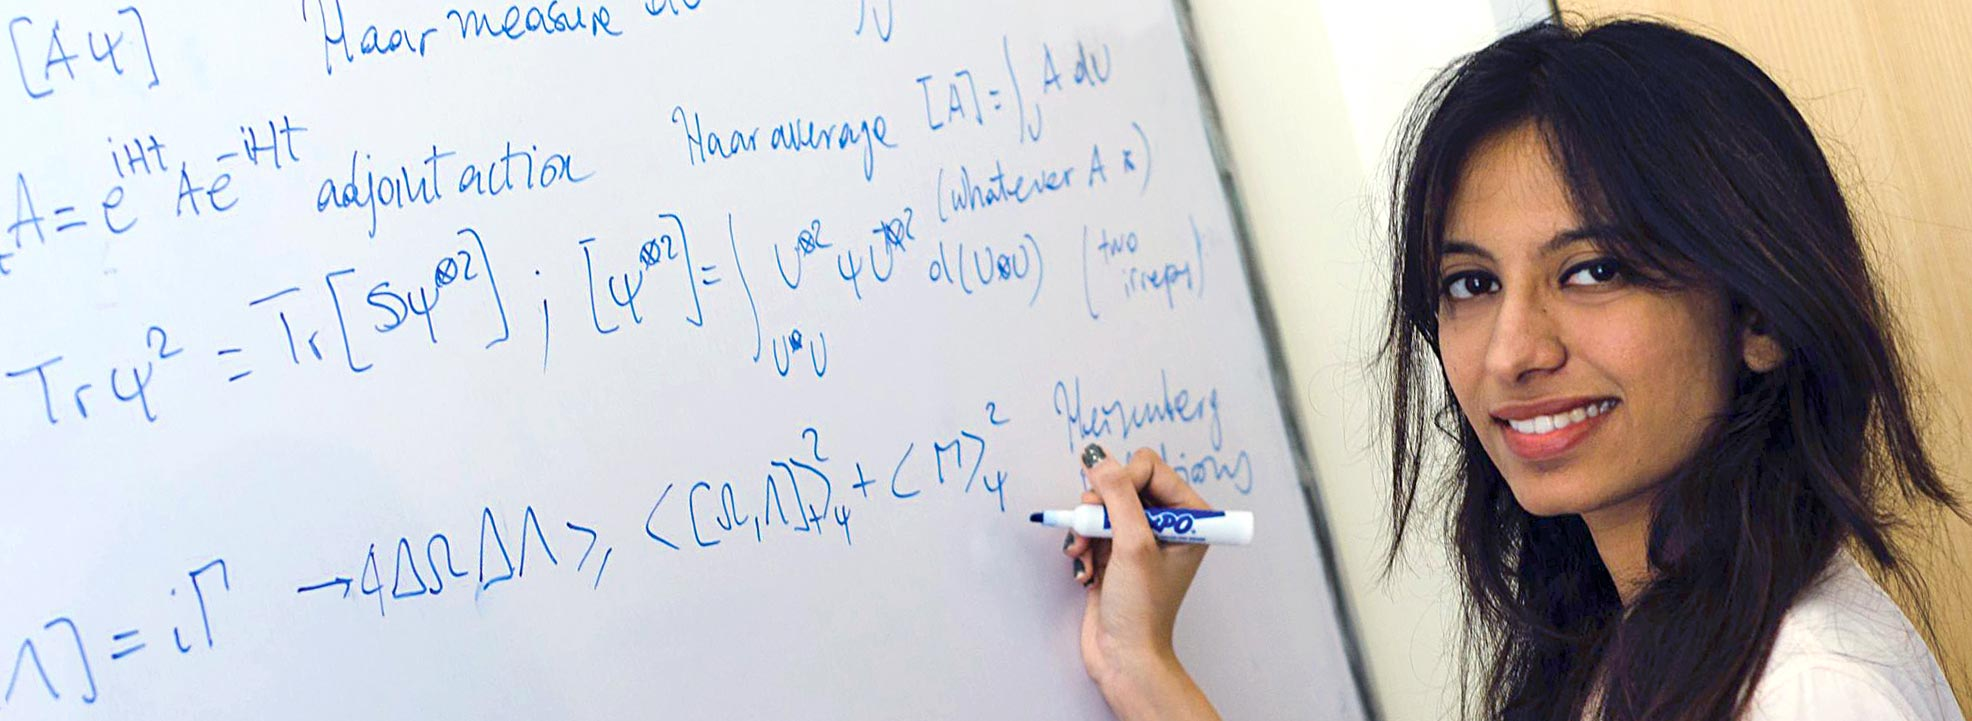 Graduate physics student holding a magic marker in front of mathematical formulas on whiteboard